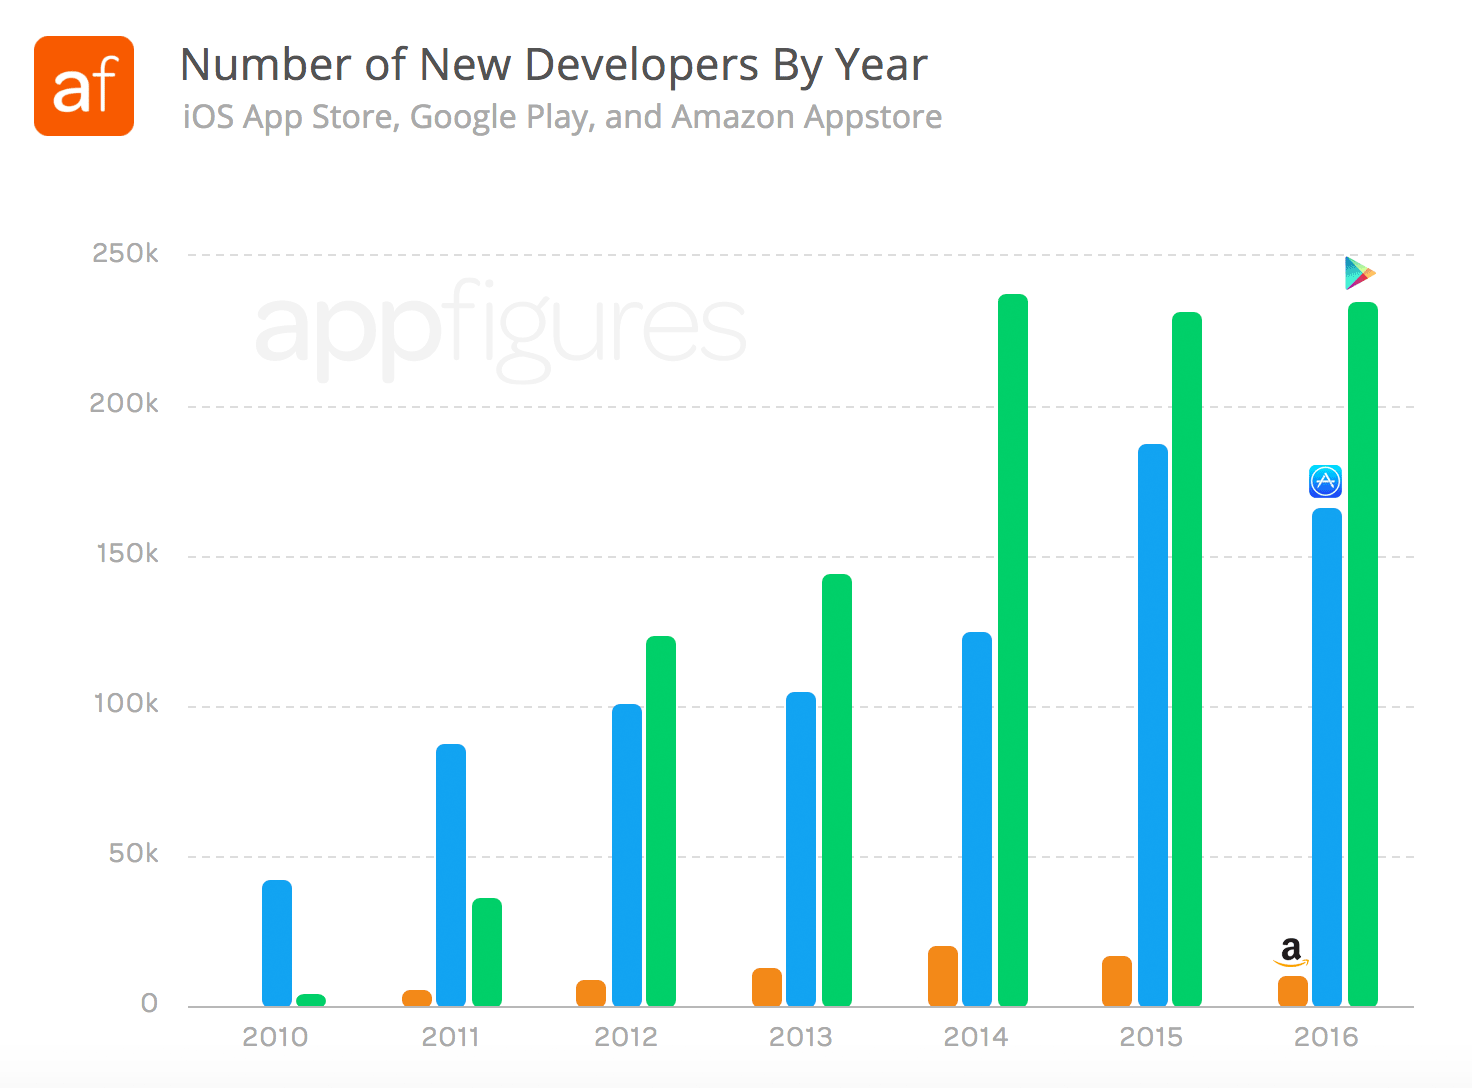 Number of new developers starting to release app by year on the iOS App Store and Google Play